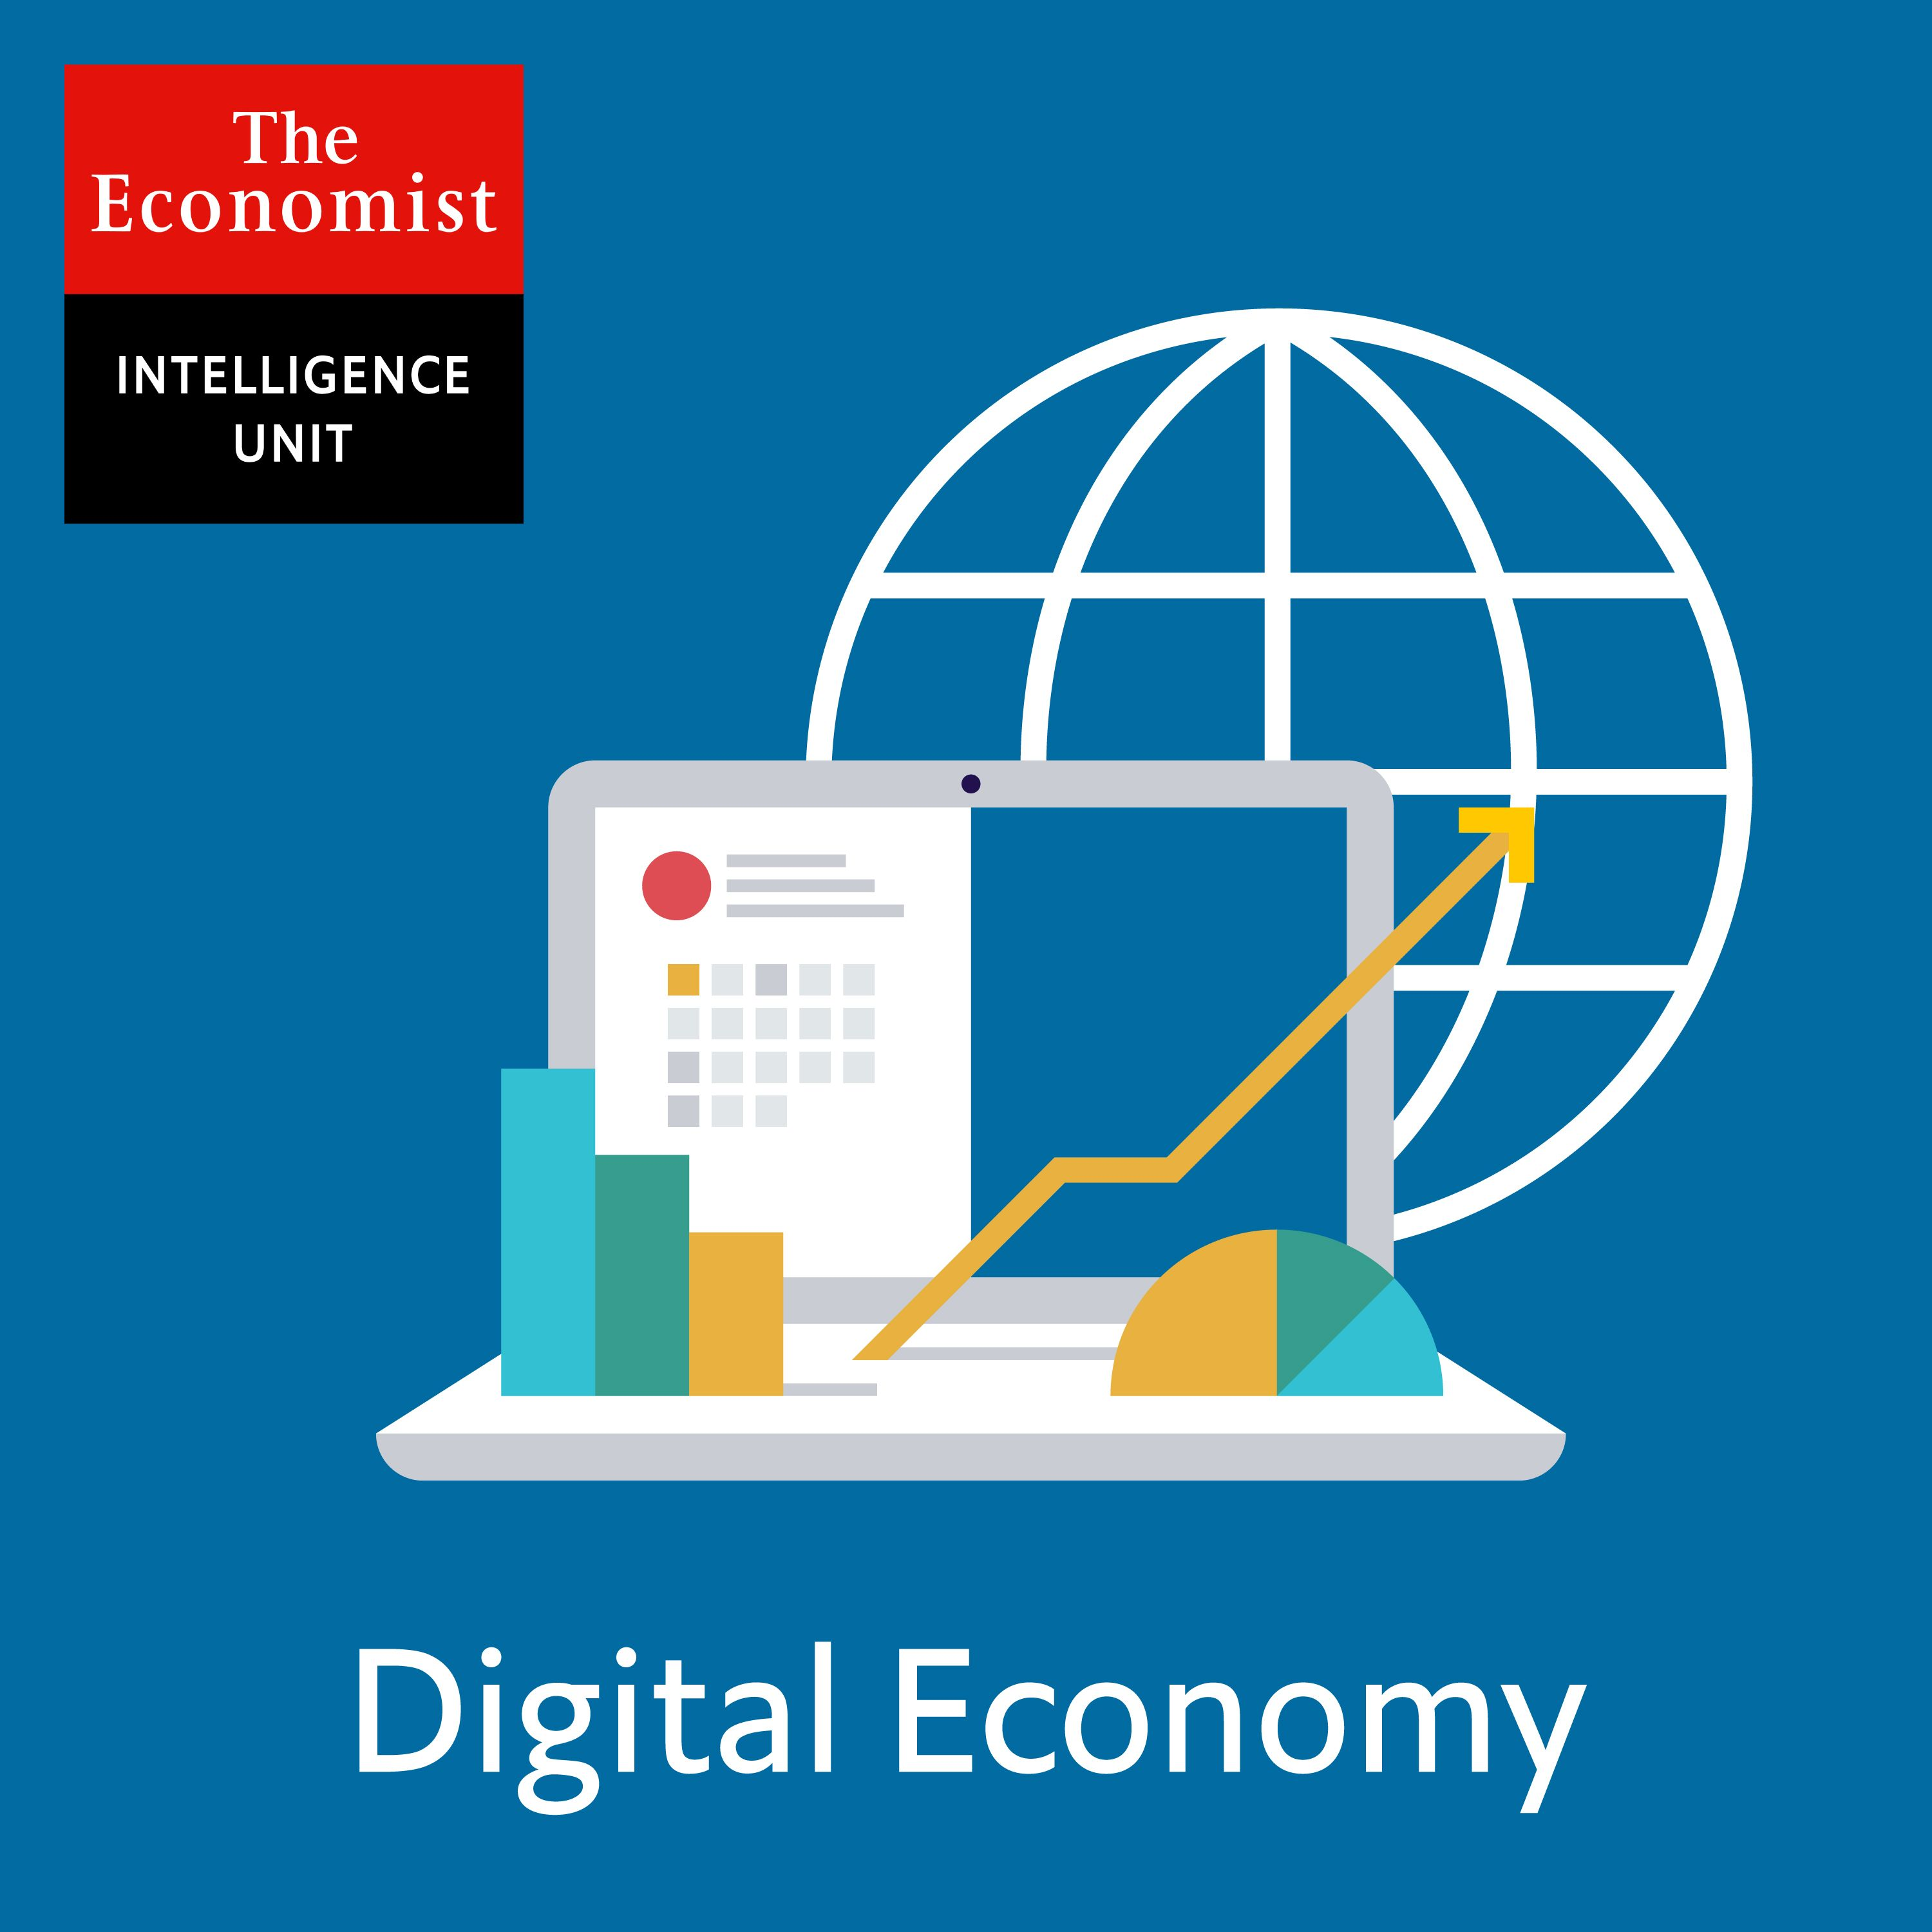 Digital Economy: What does the future of work mean for managers?